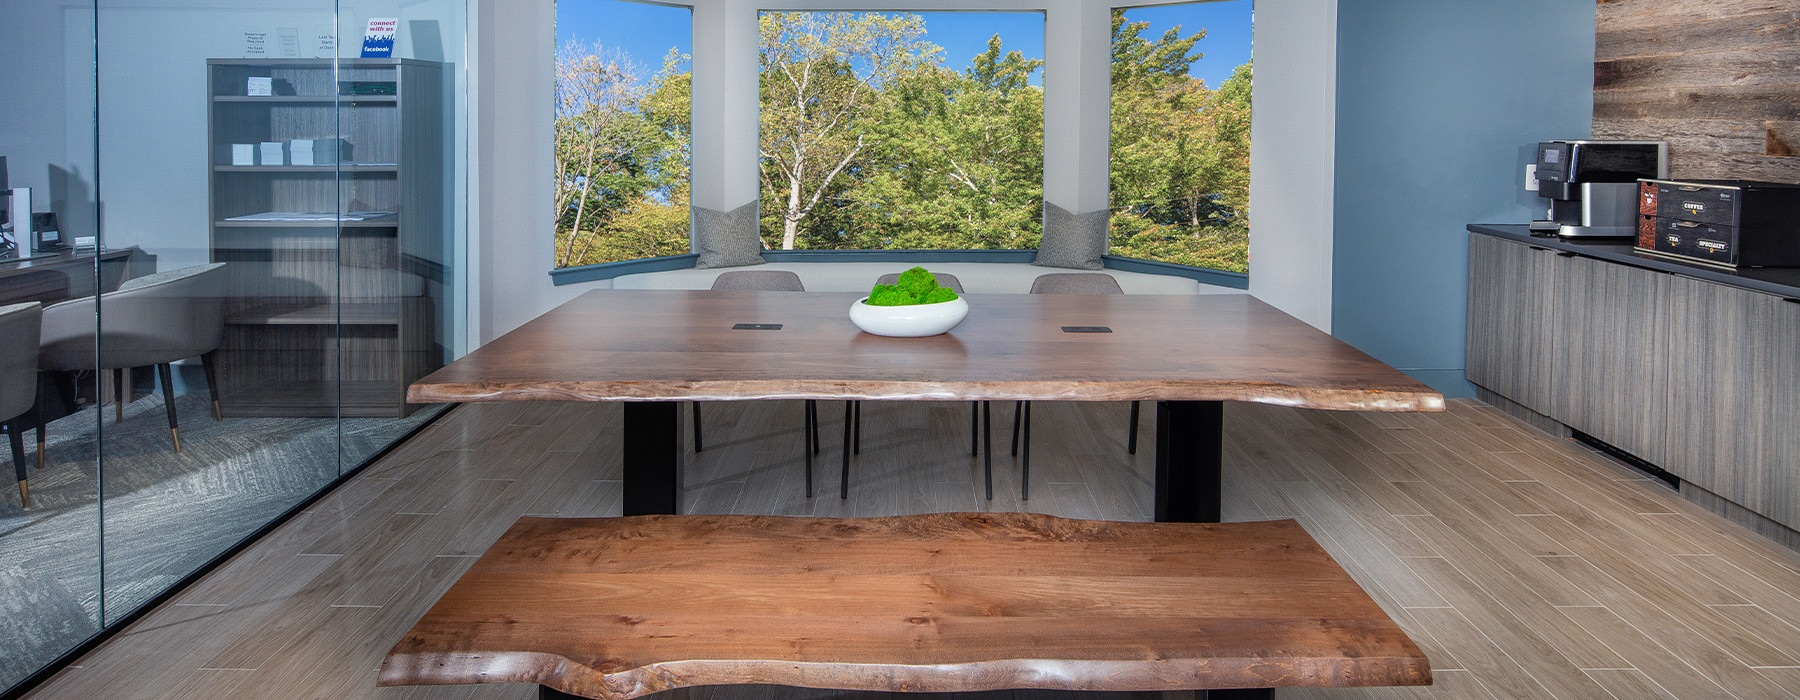 Spacious community kitchen with rustic style wood table and large windows with a view.